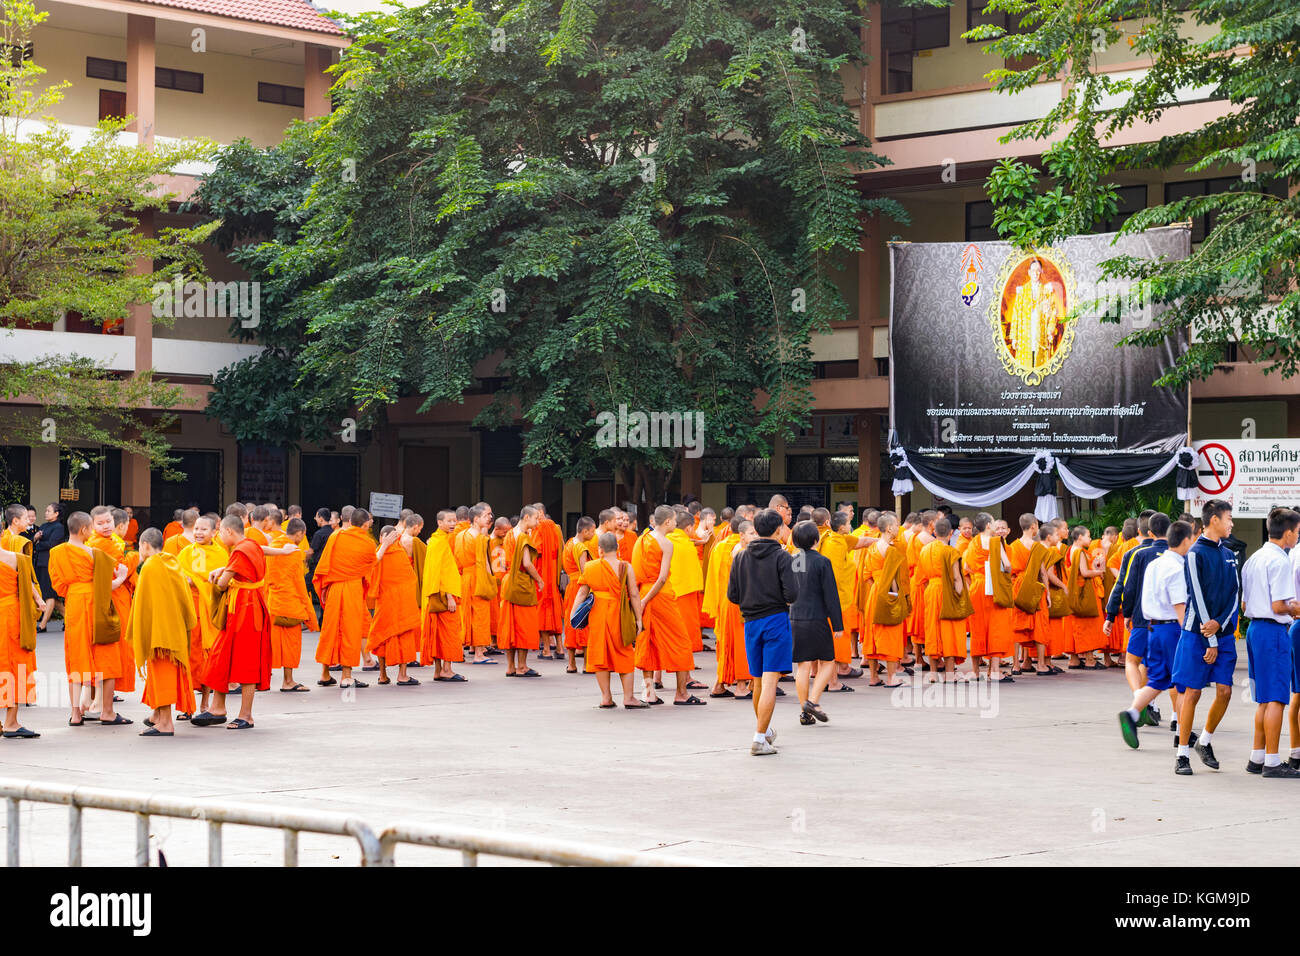 Monk school daily life, Thai monks queue up for school in Chiang Mai, Thailand - Stock Image